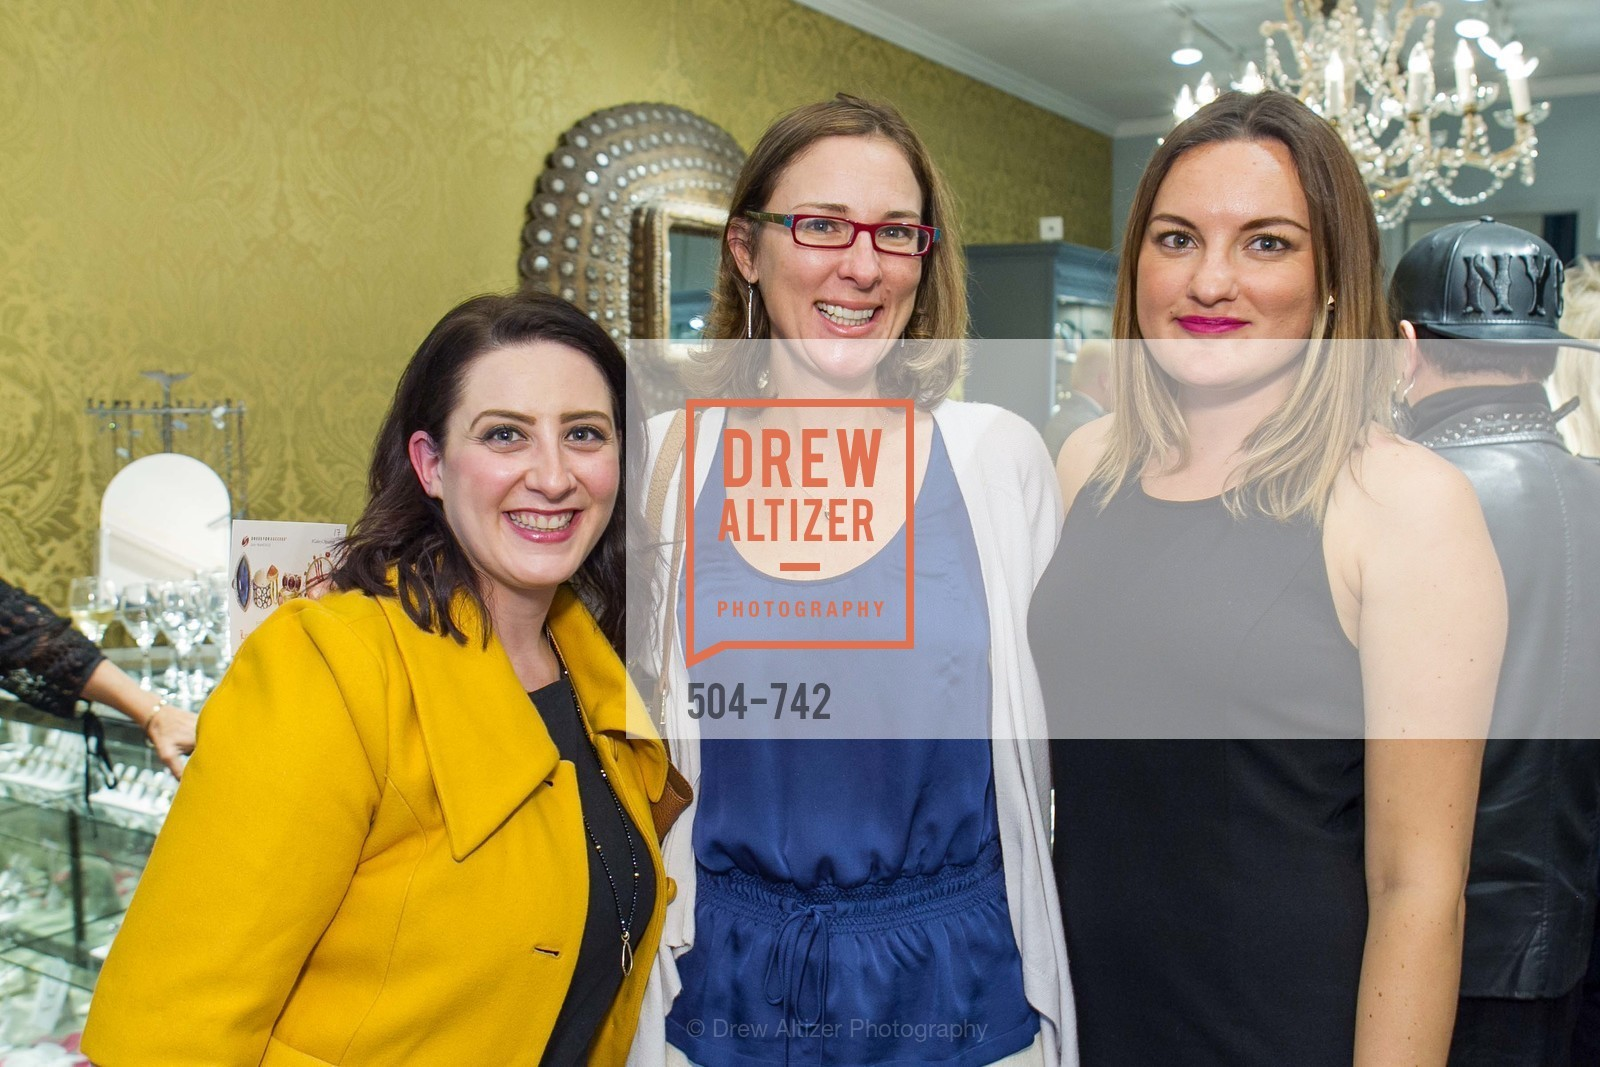 Gia Barsi, Julie Sims, Rena Ramirez, LUXETIGERS & GALLERY OF JEWELS Benefit for Dress for Success, US, May 21st, 2015,Drew Altizer, Drew Altizer Photography, full-service agency, private events, San Francisco photographer, photographer california